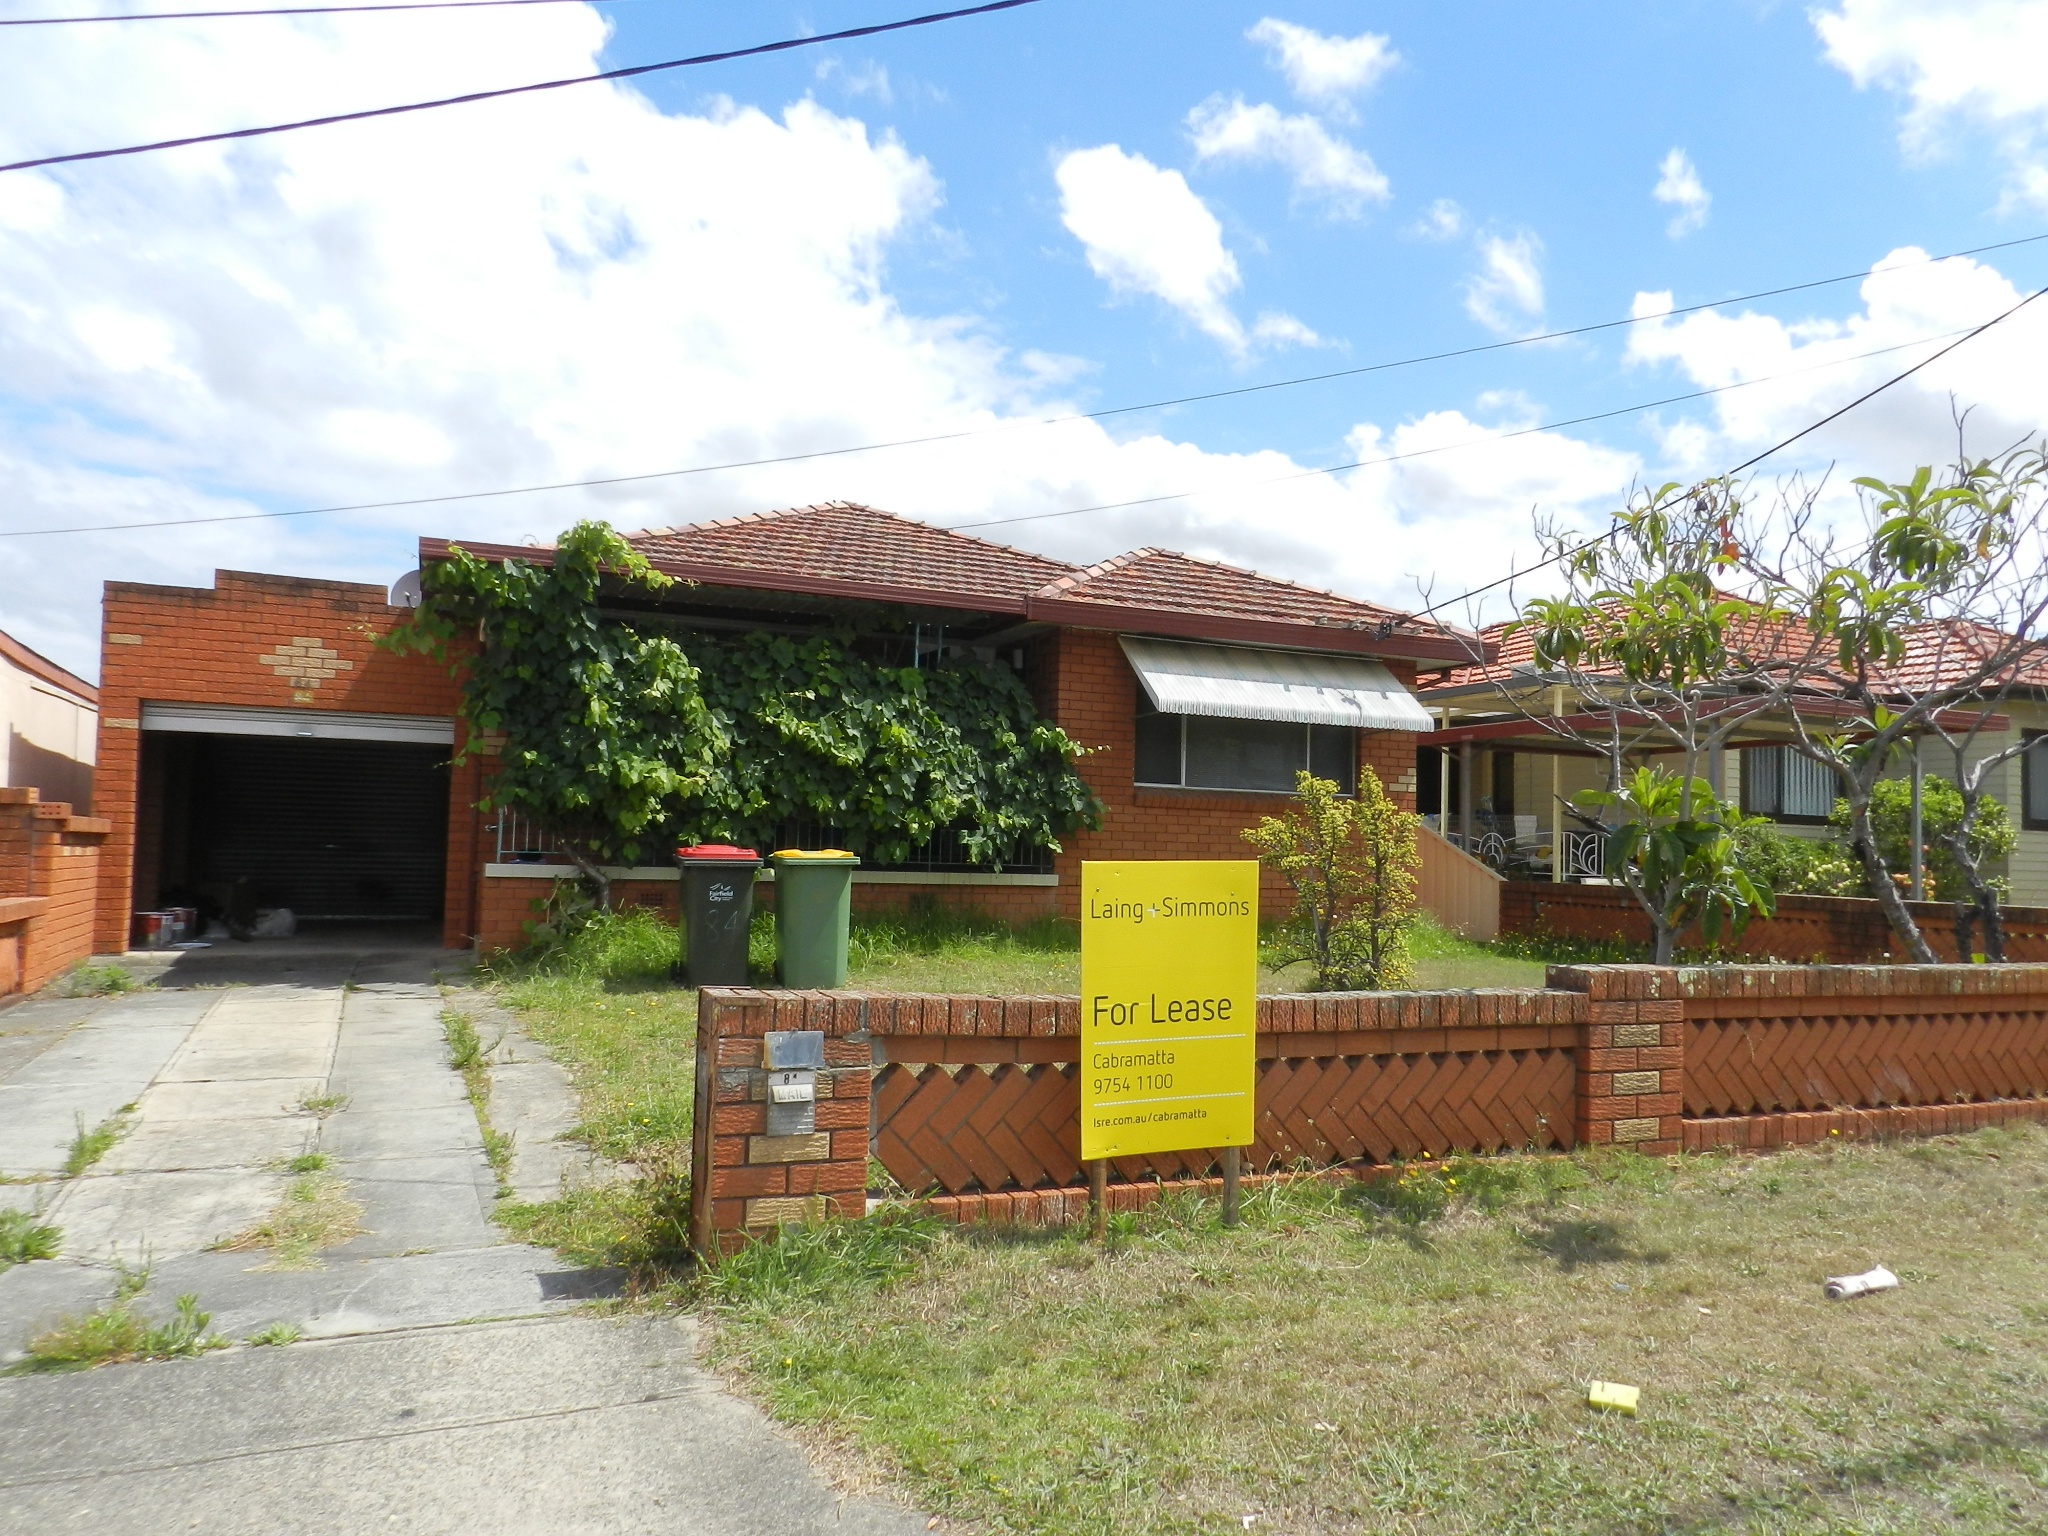 84 Buckingham Street, CANLEY HEIGHTS NSW 2166-1